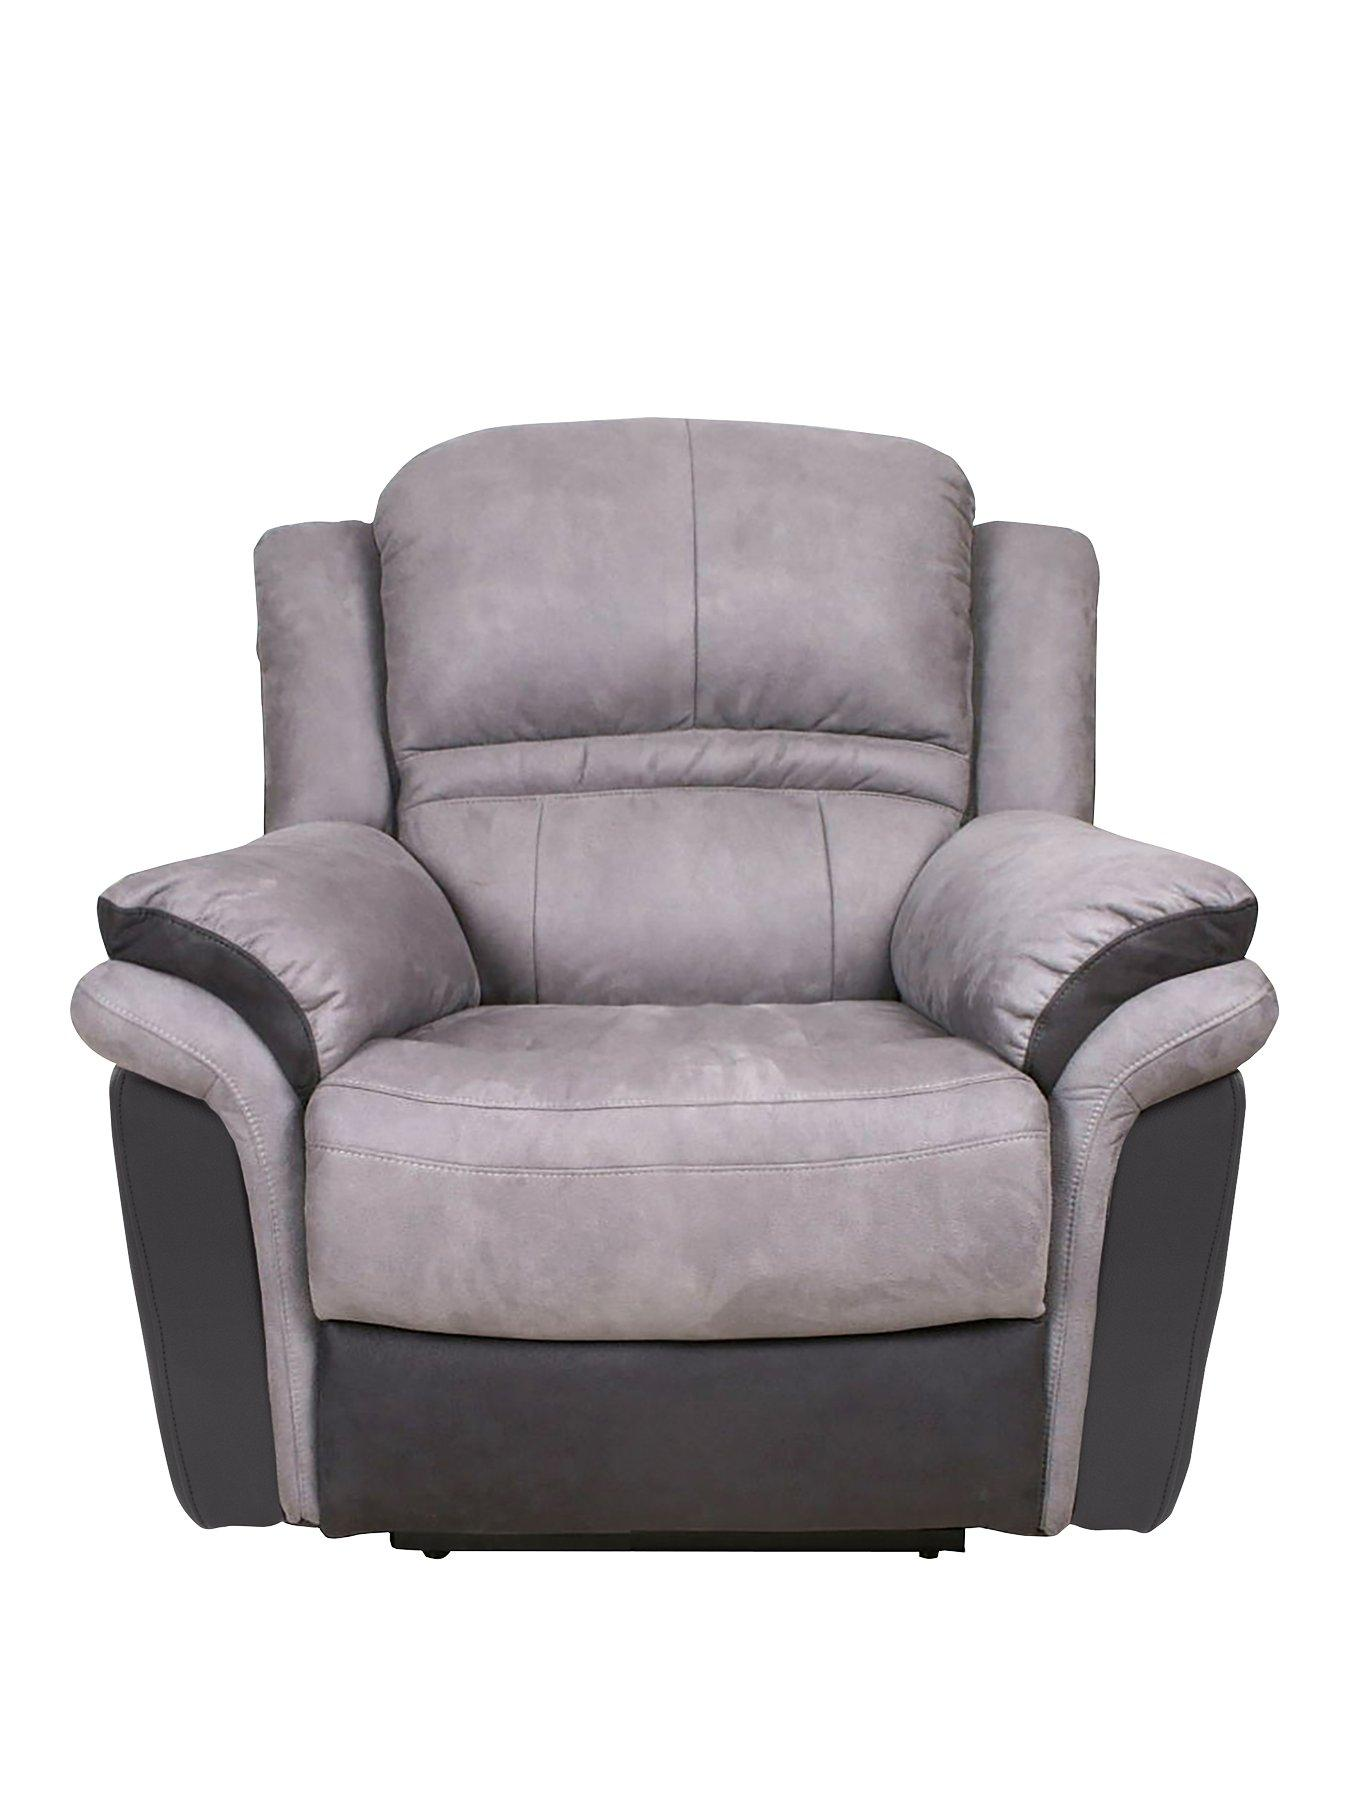 Petra Manual Recliner Armchair  sc 1 st  Very & Grey | Recliner | Armchairs | Chairs | Home u0026 garden | www.very.co.uk islam-shia.org